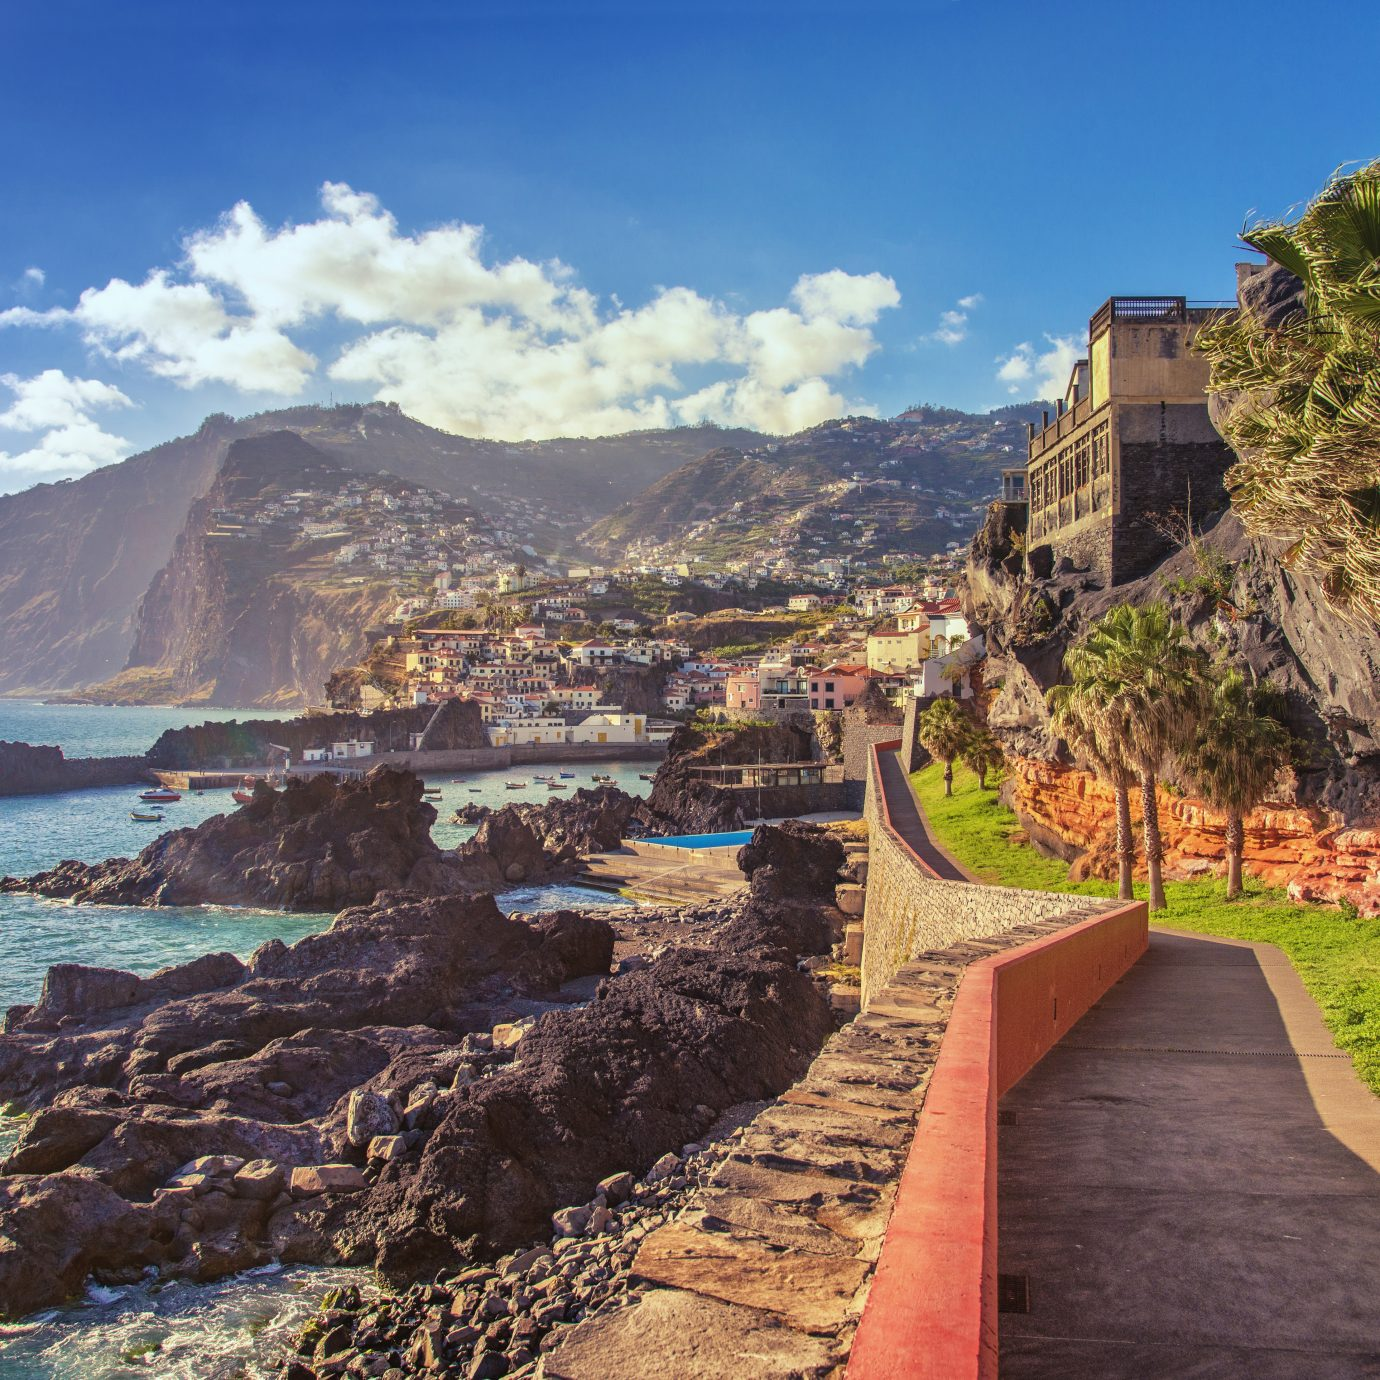 The beautifil Promenade walk from Funchal Lido into the fishing viallge of Camara de Lobos on Madeira at sunset